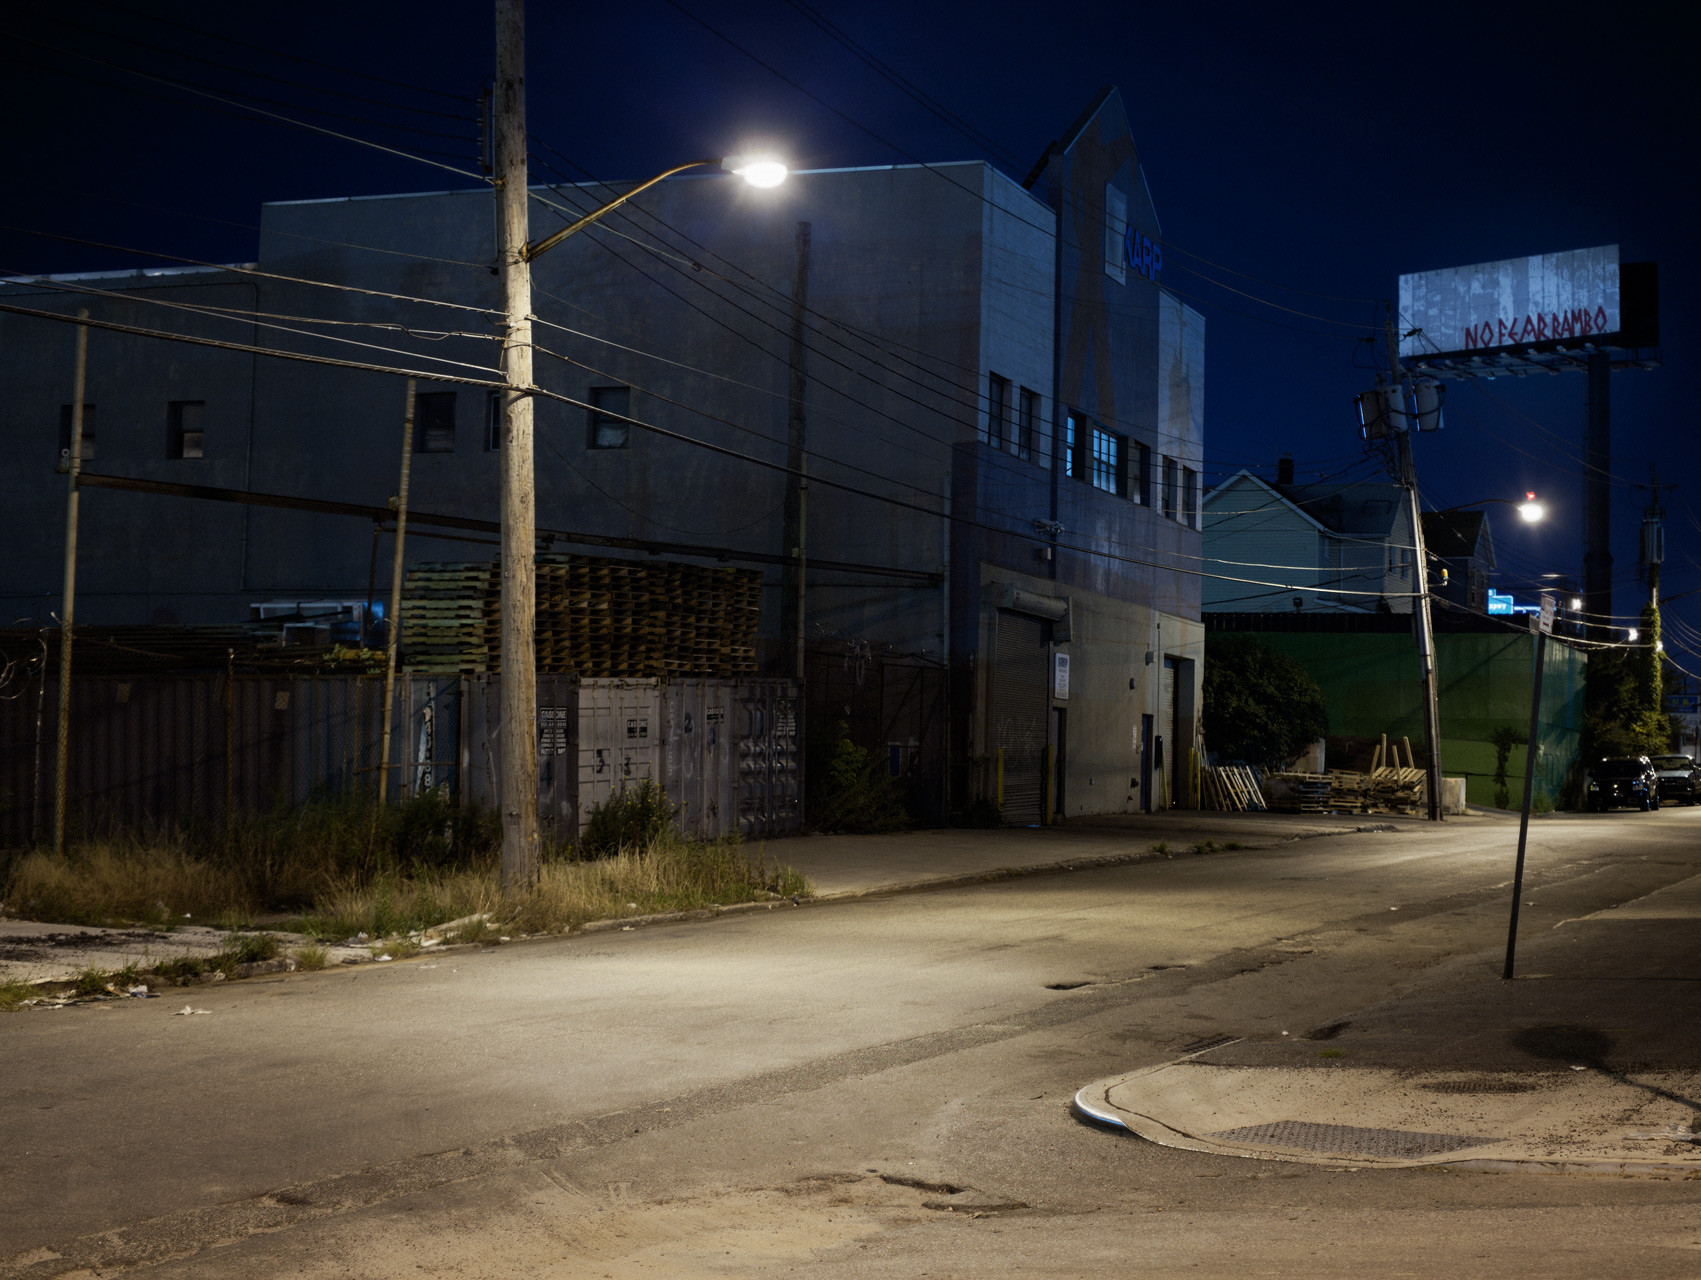 Timo_Stammberger_New_York_Queens_Maspeth_Night_Streetlights_Shady_Billboard